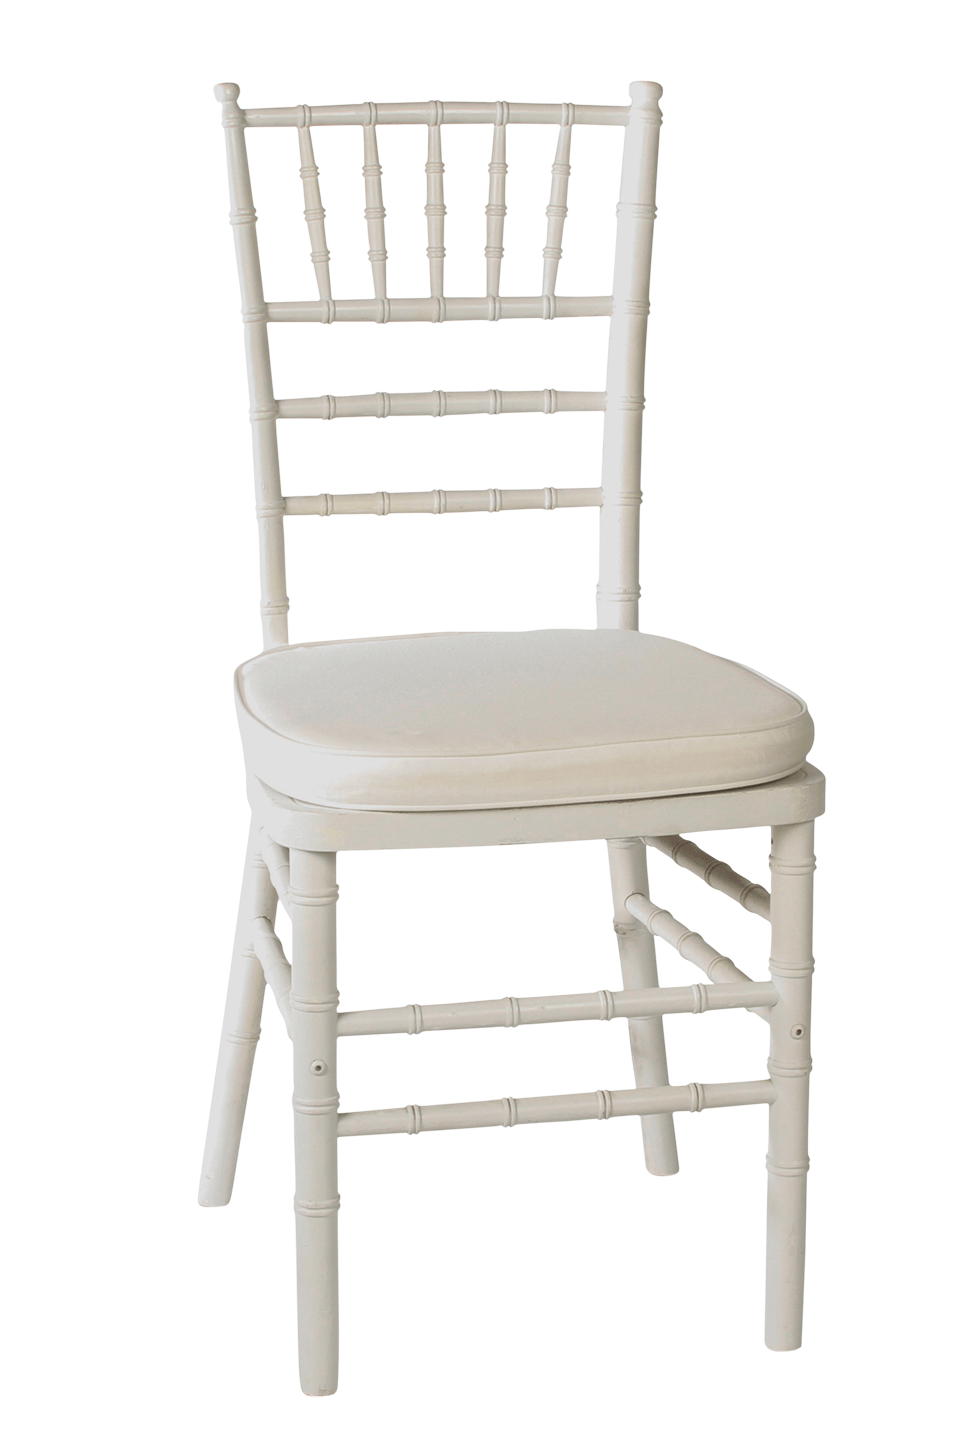 Chiavary Chair white with cushion